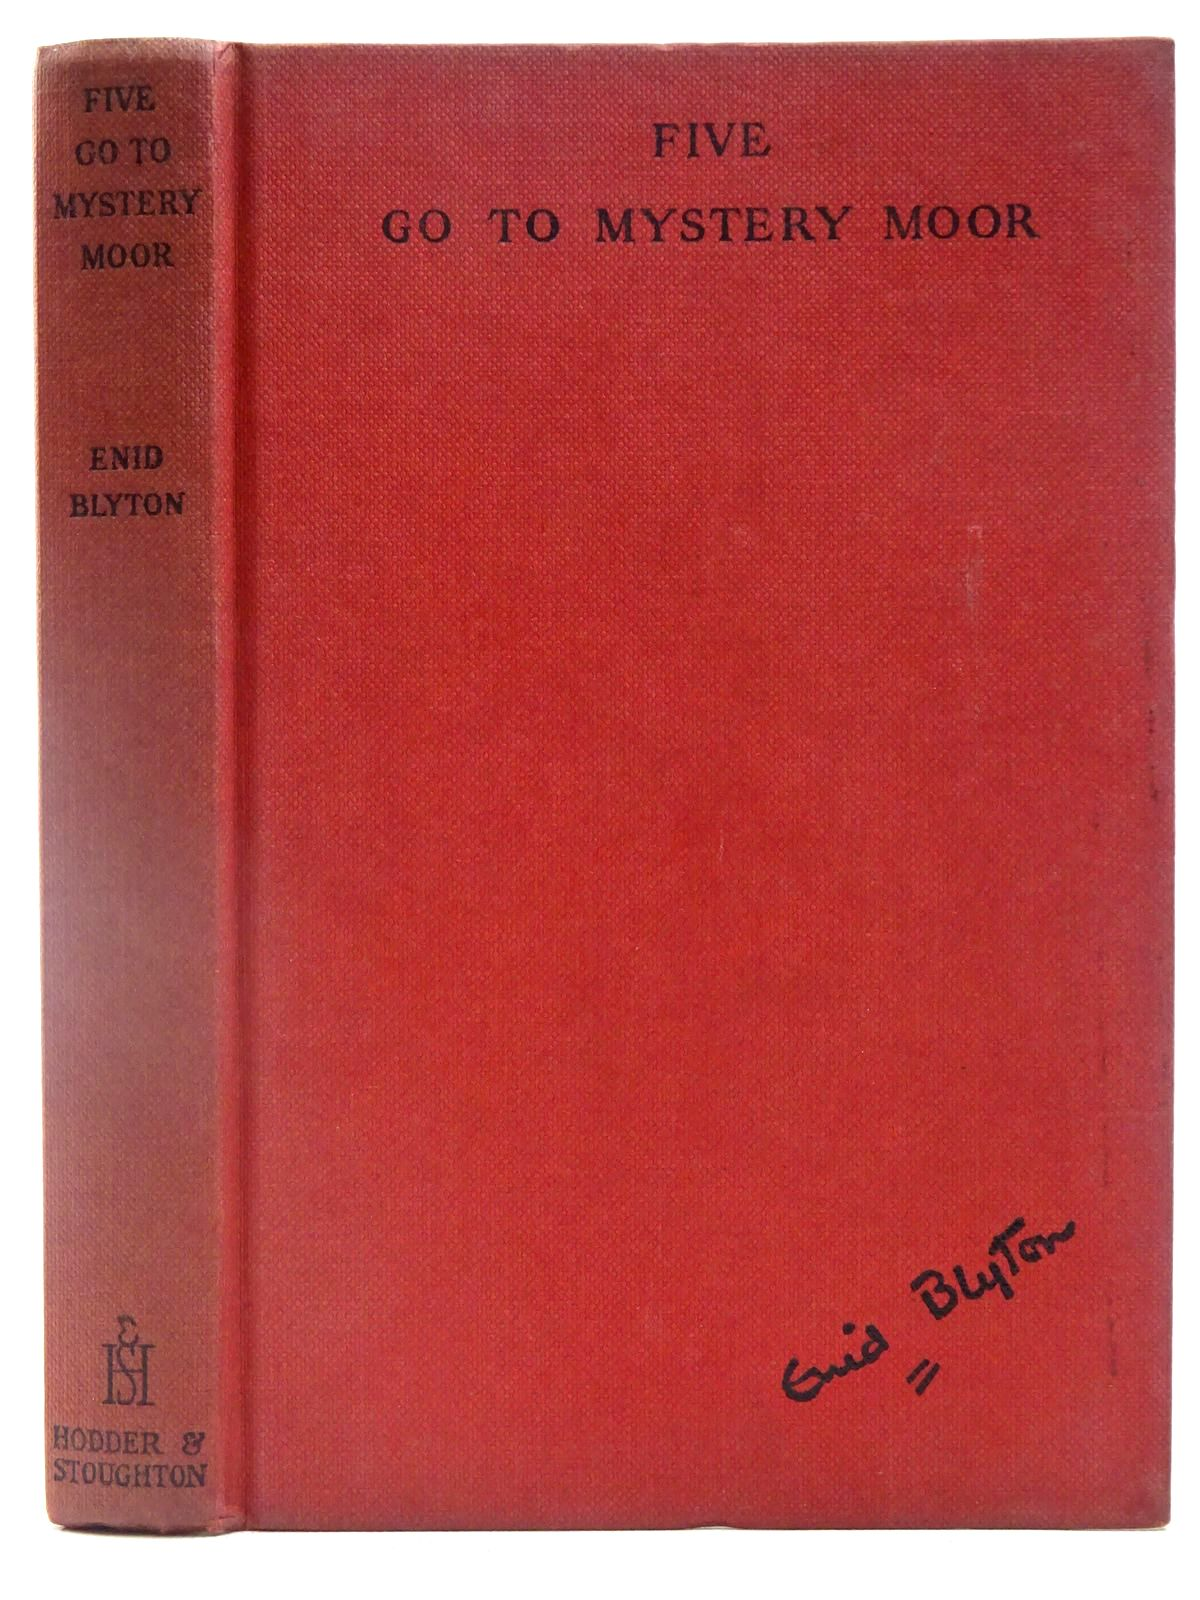 Photo of FIVE GO TO MYSTERY MOOR written by Blyton, Enid illustrated by Soper, Eileen published by Hodder & Stoughton (STOCK CODE: 2128176)  for sale by Stella & Rose's Books